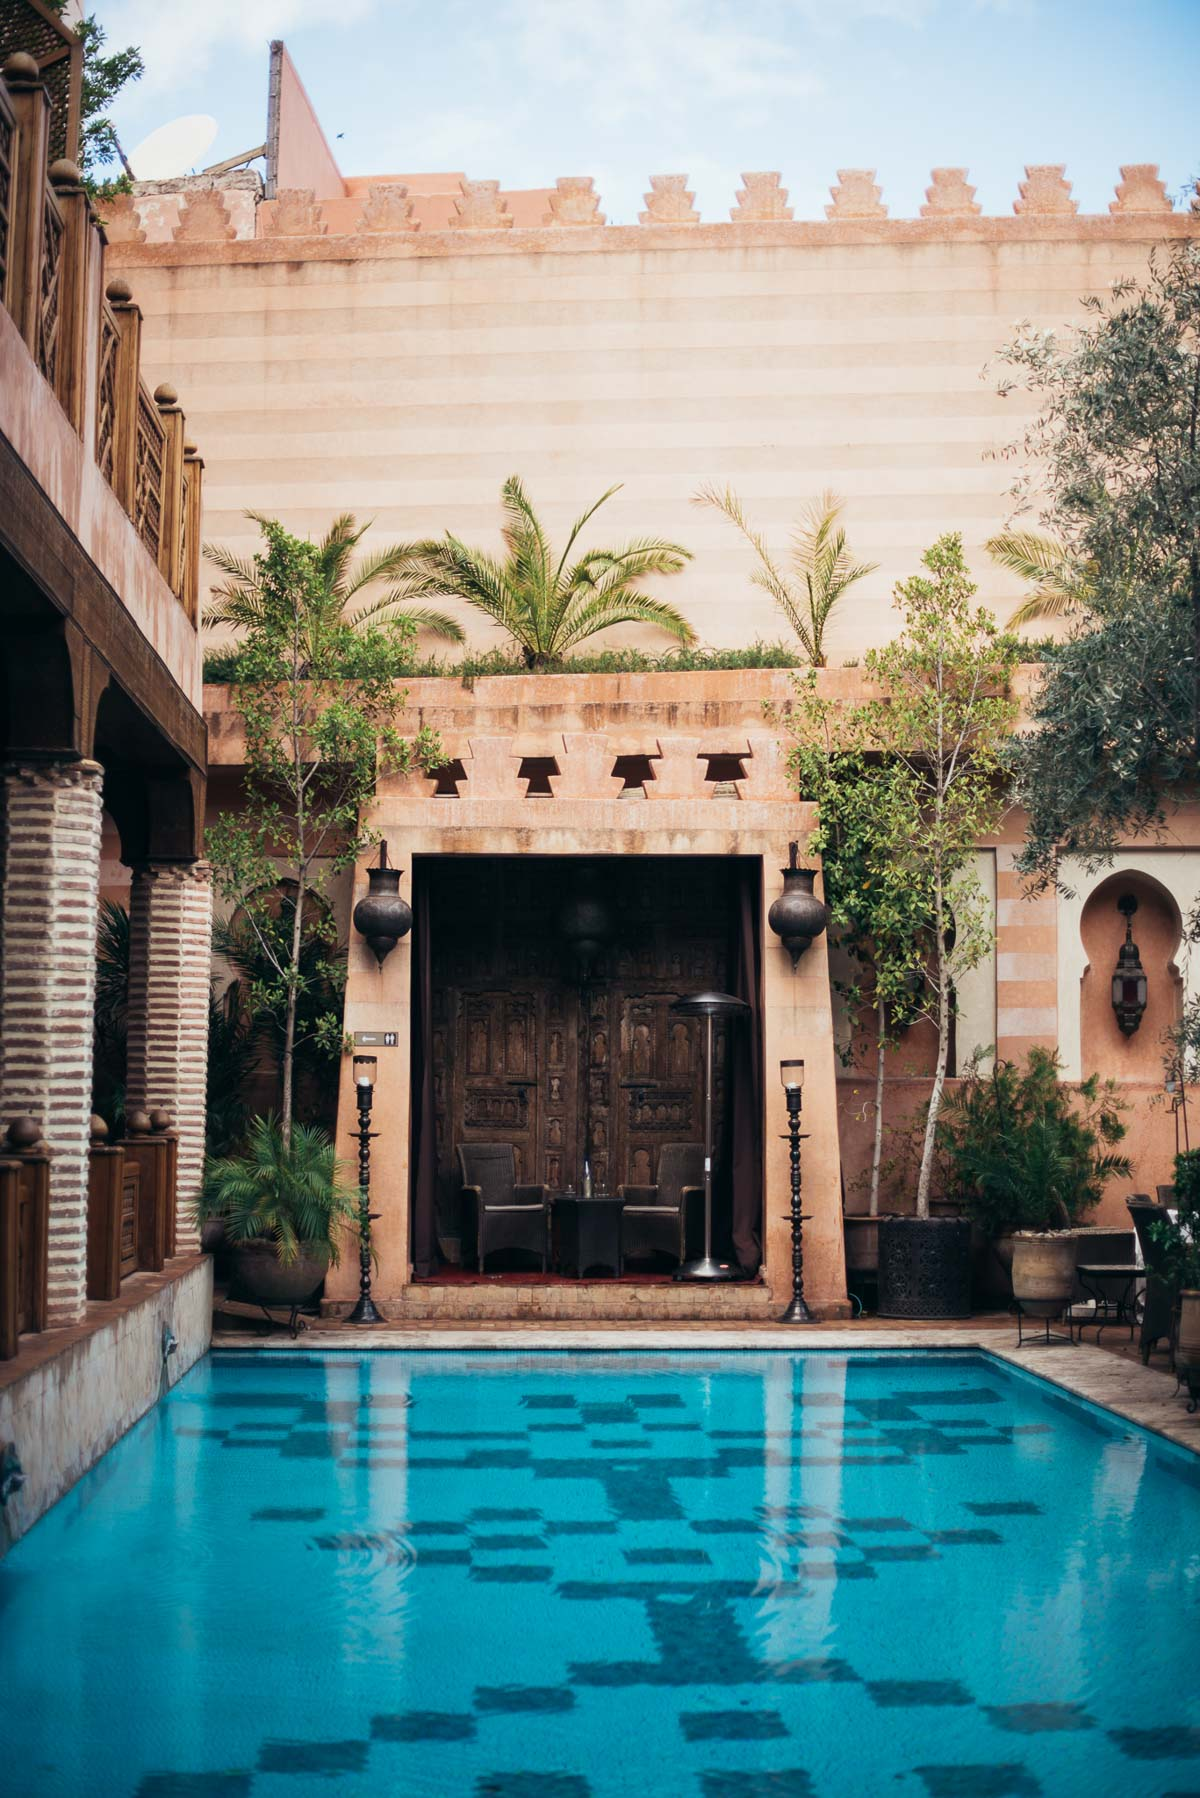 Legendary riad in the medina of marrakech la maison arabe marrakech morocc - Maison riad marrakech ...